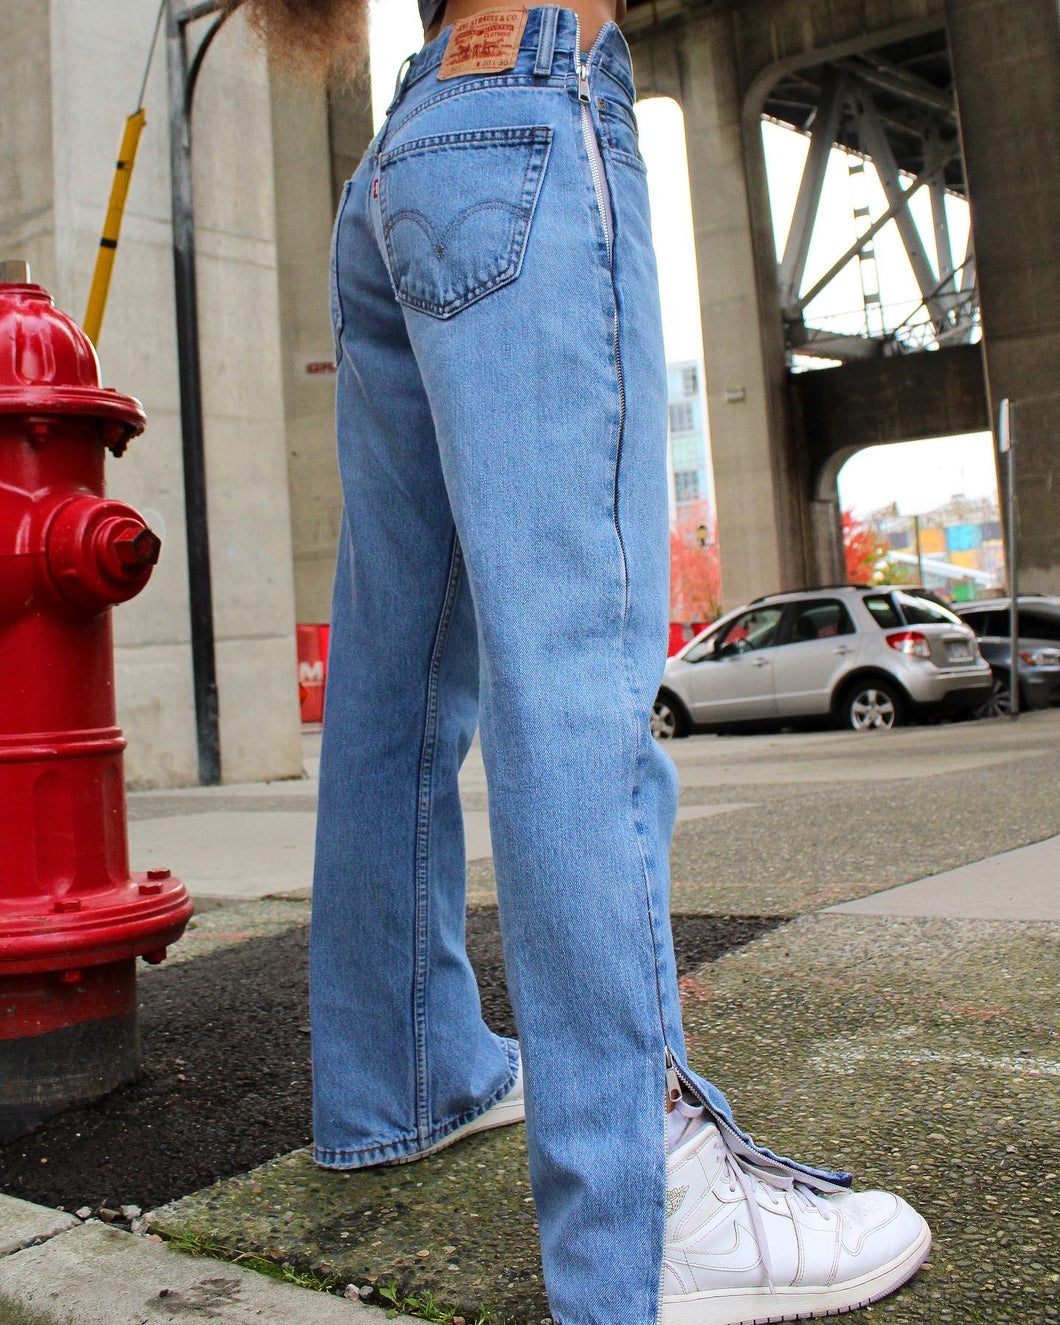 Unattached Denim